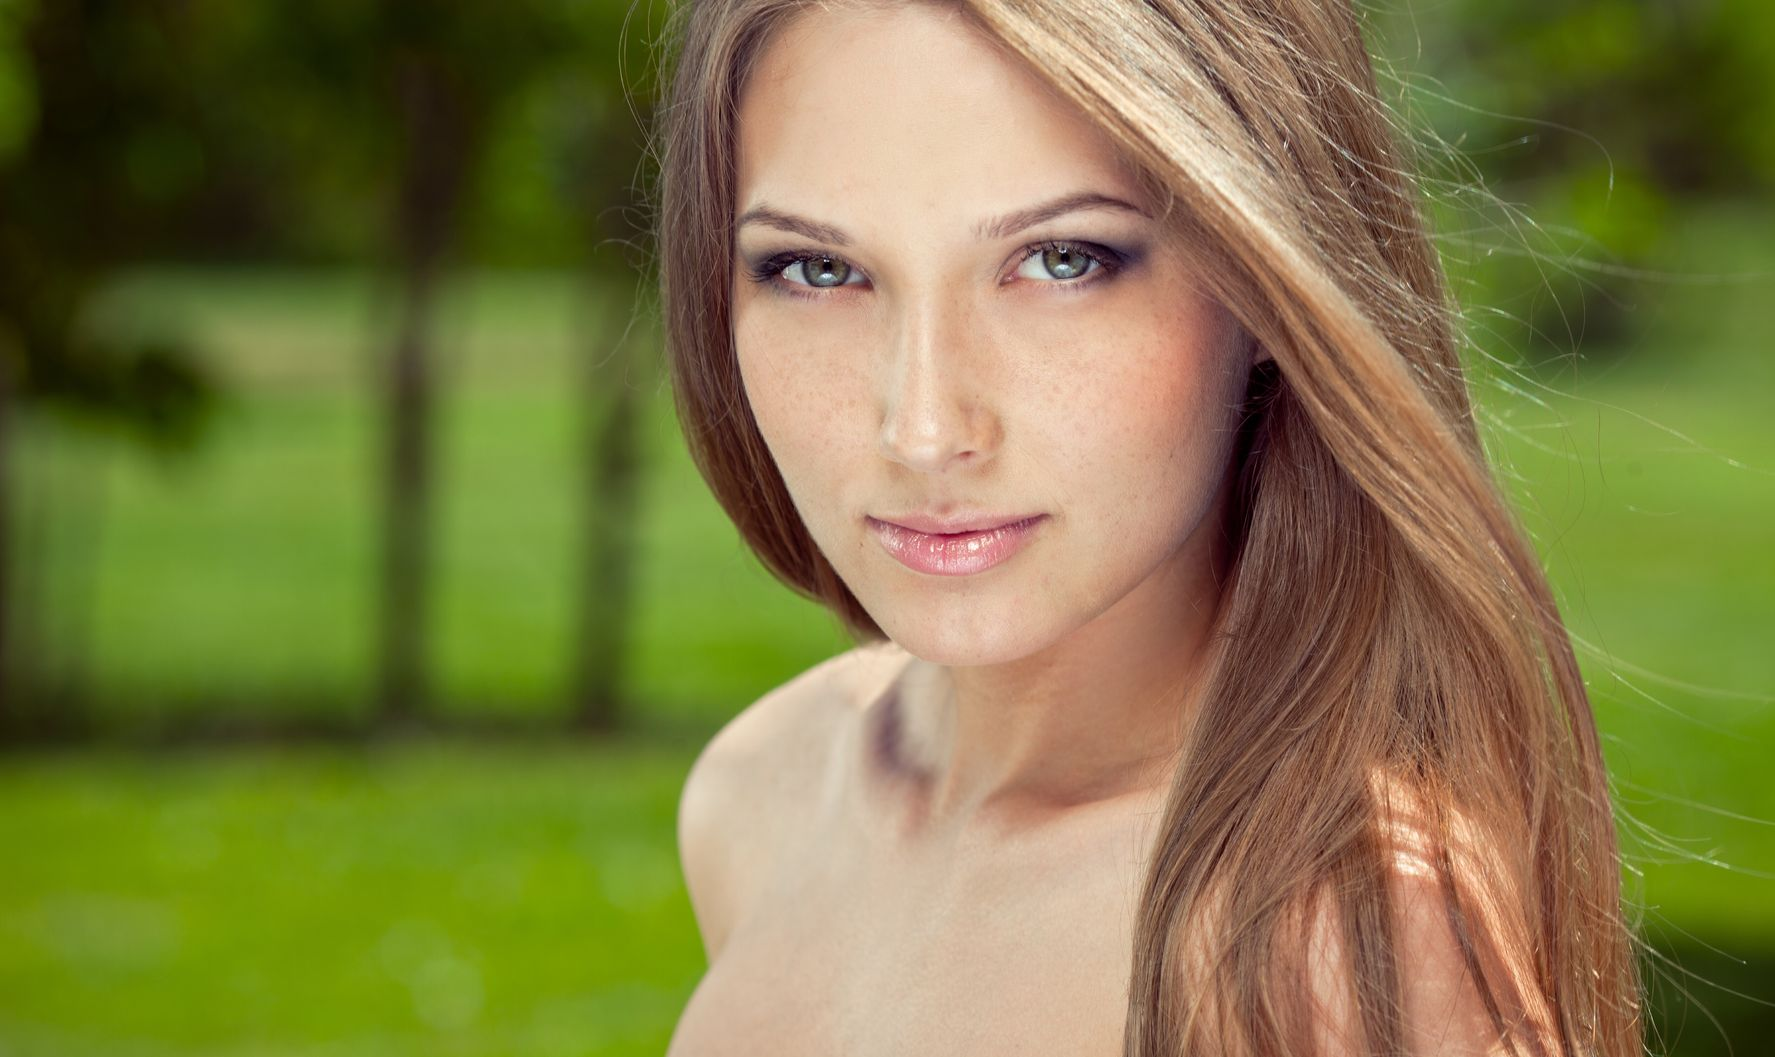 What Can I Expect From Abdominoplasty Surgery?